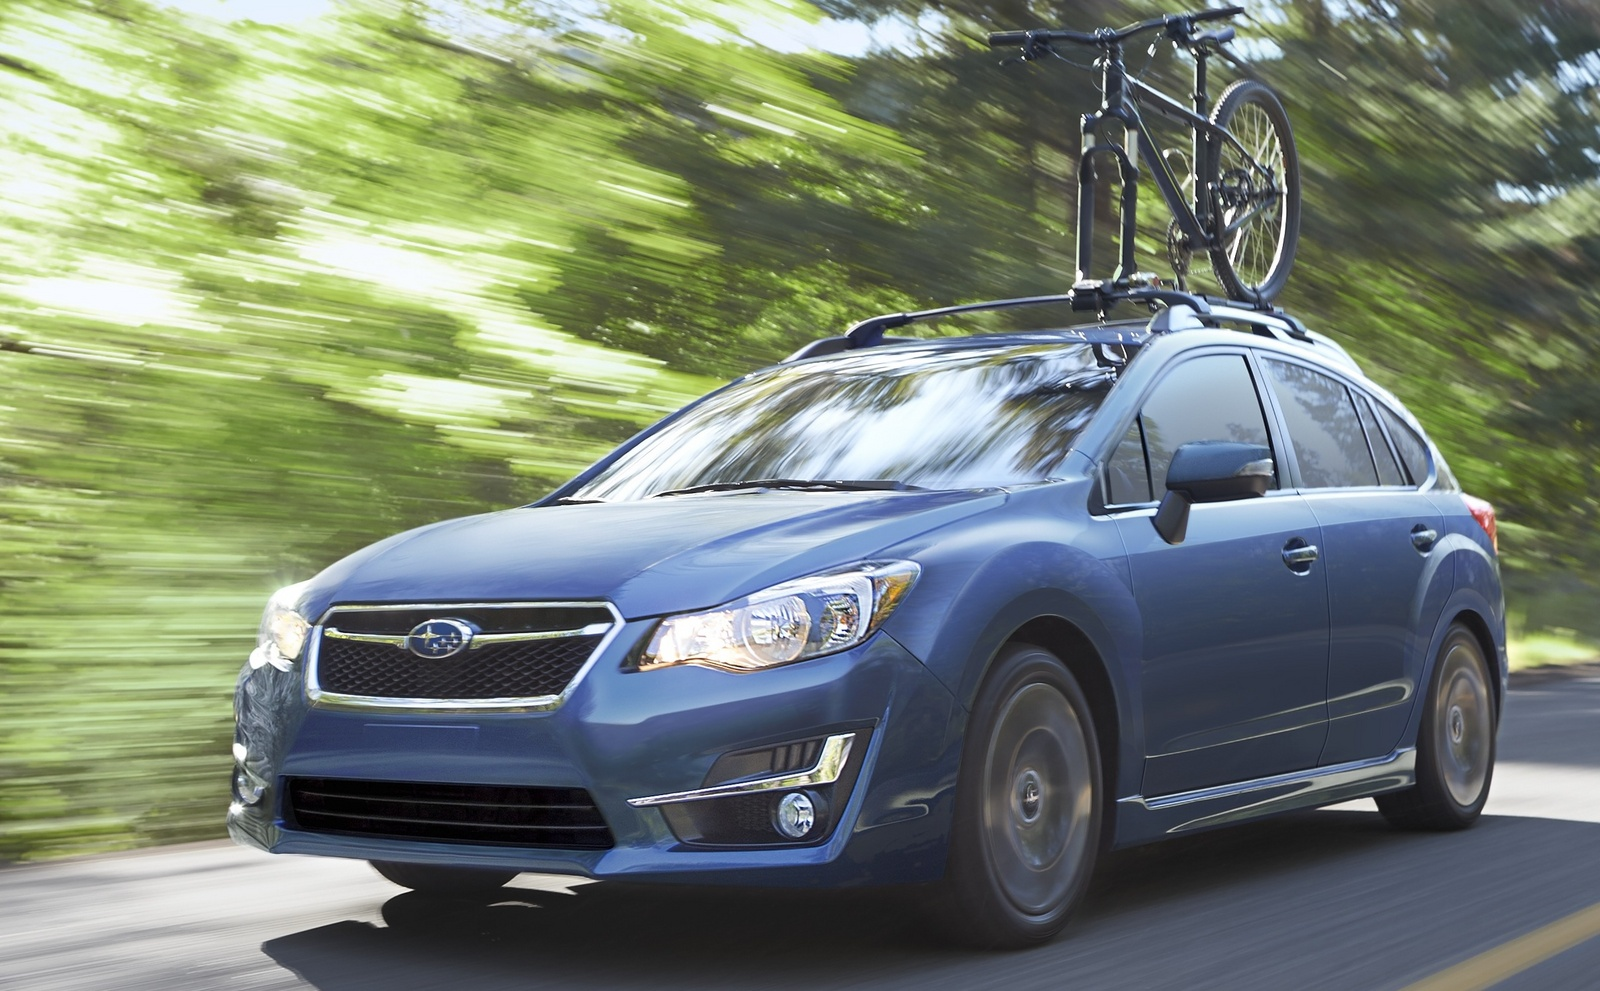 hight resolution of test drive review 2015 subaru impreza